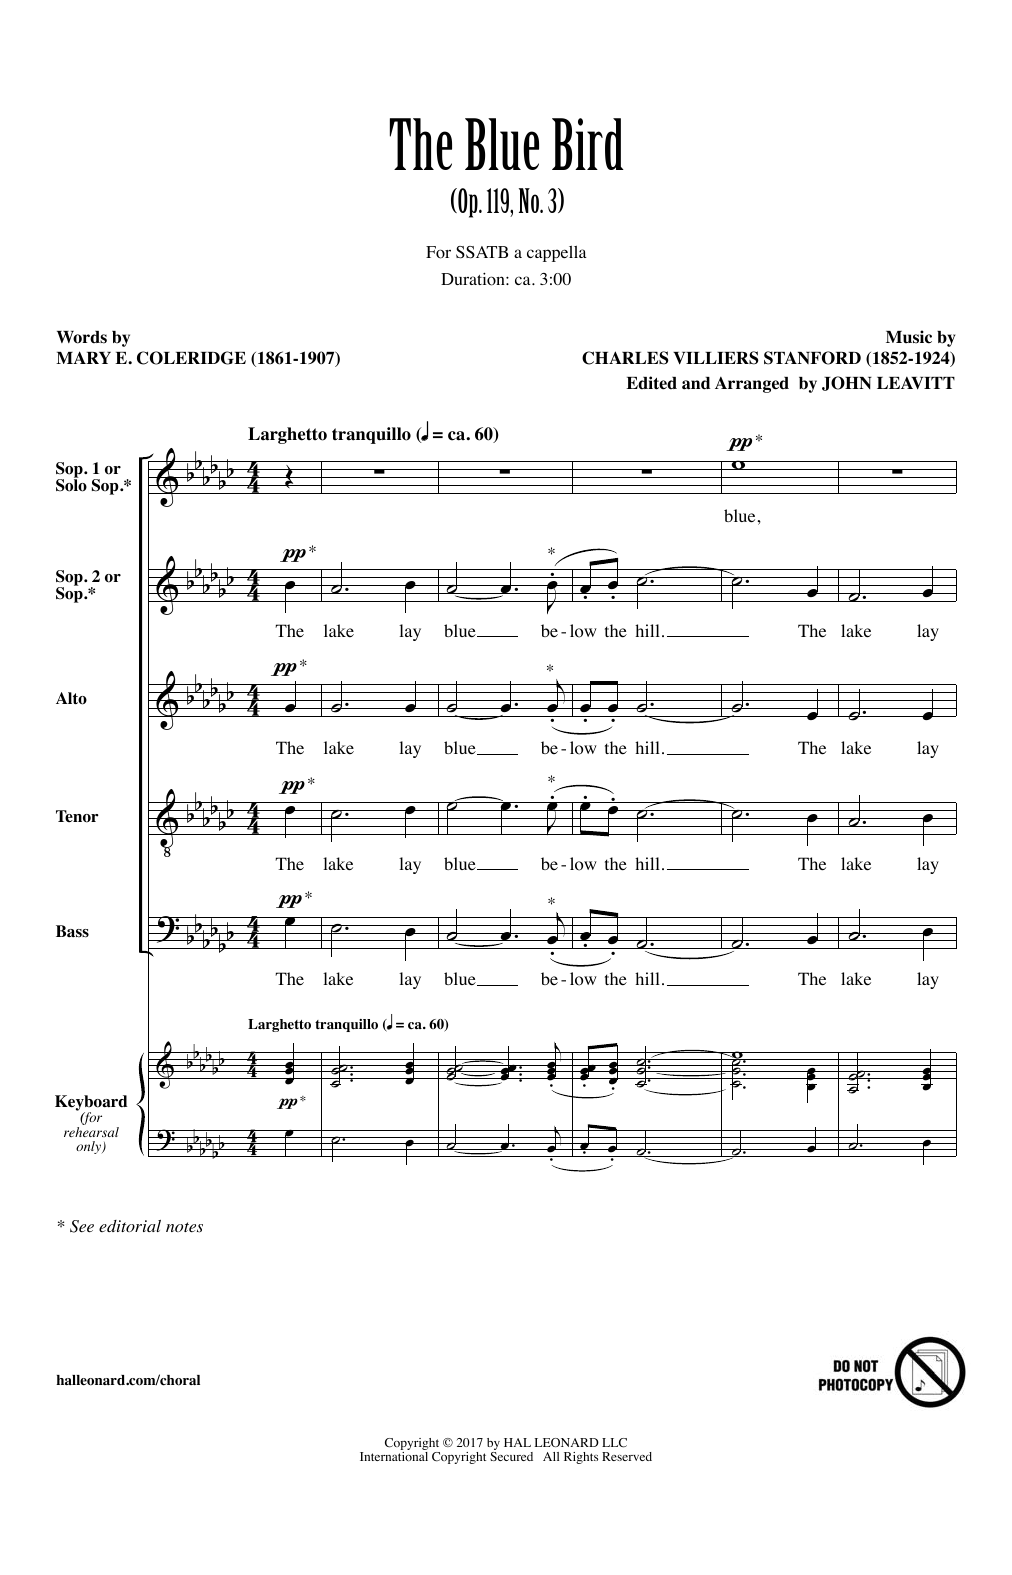 The Blue Bird (SATB Choir)